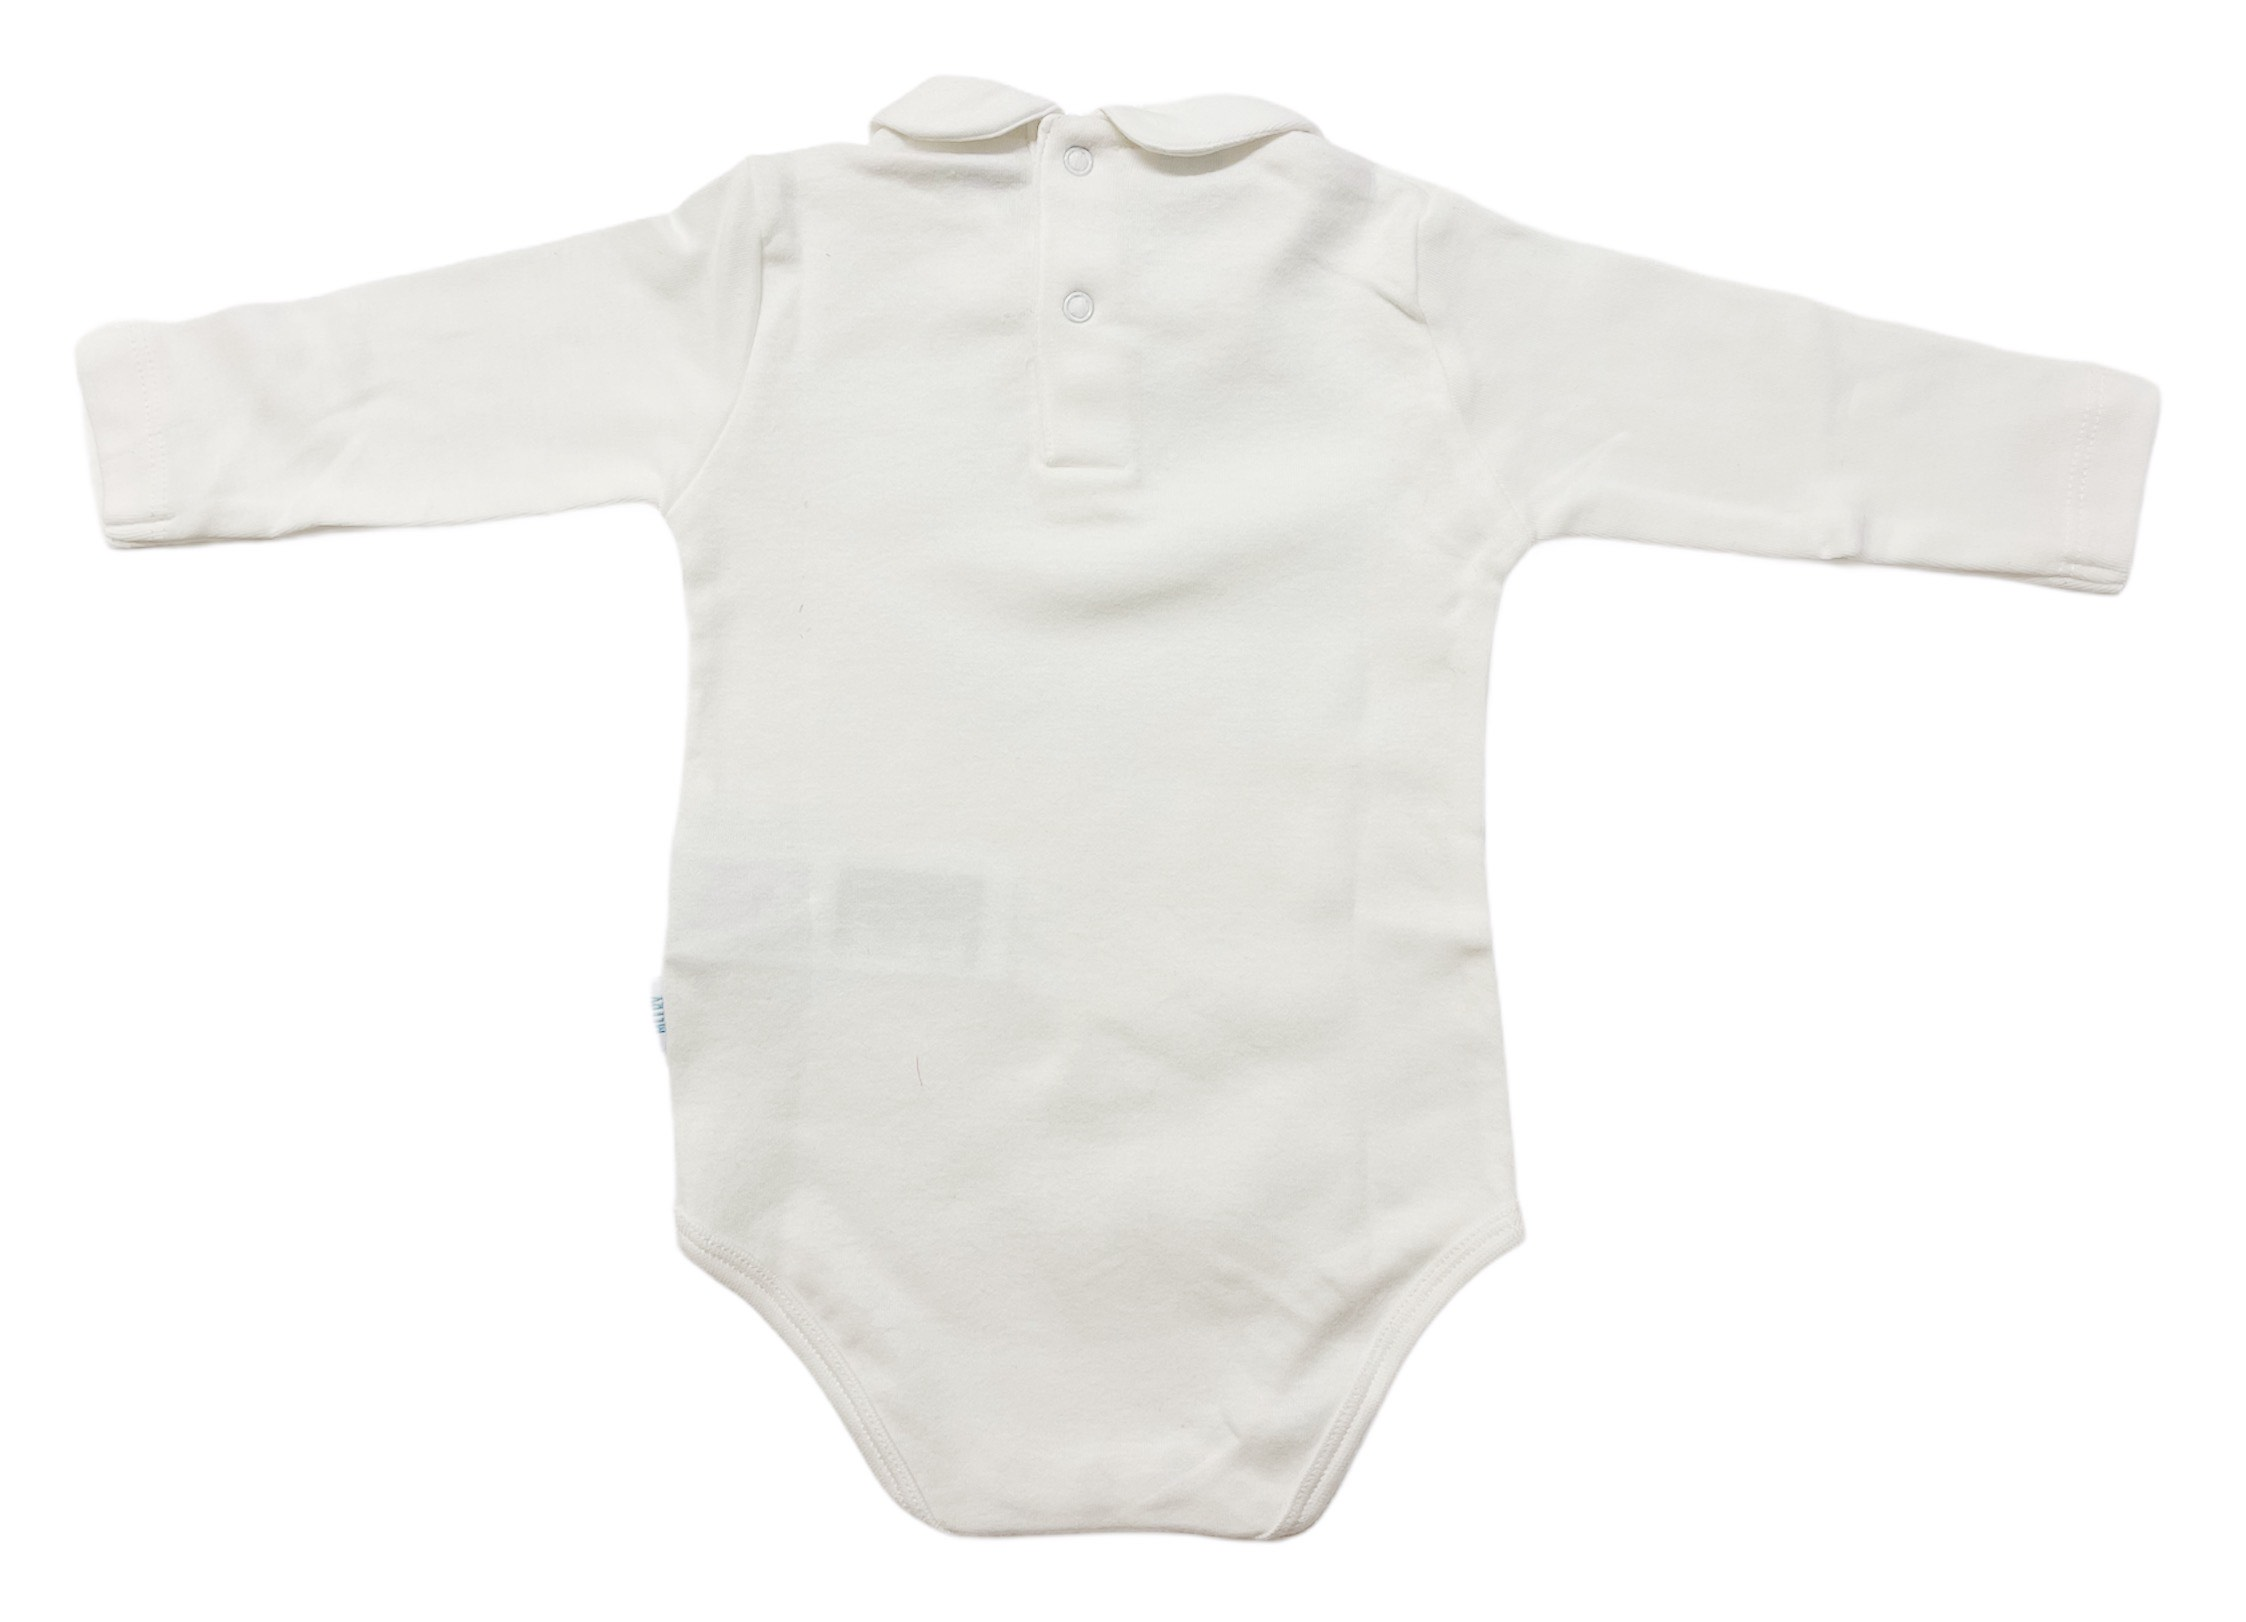 BODY COLLETTO BABY MELBY 2